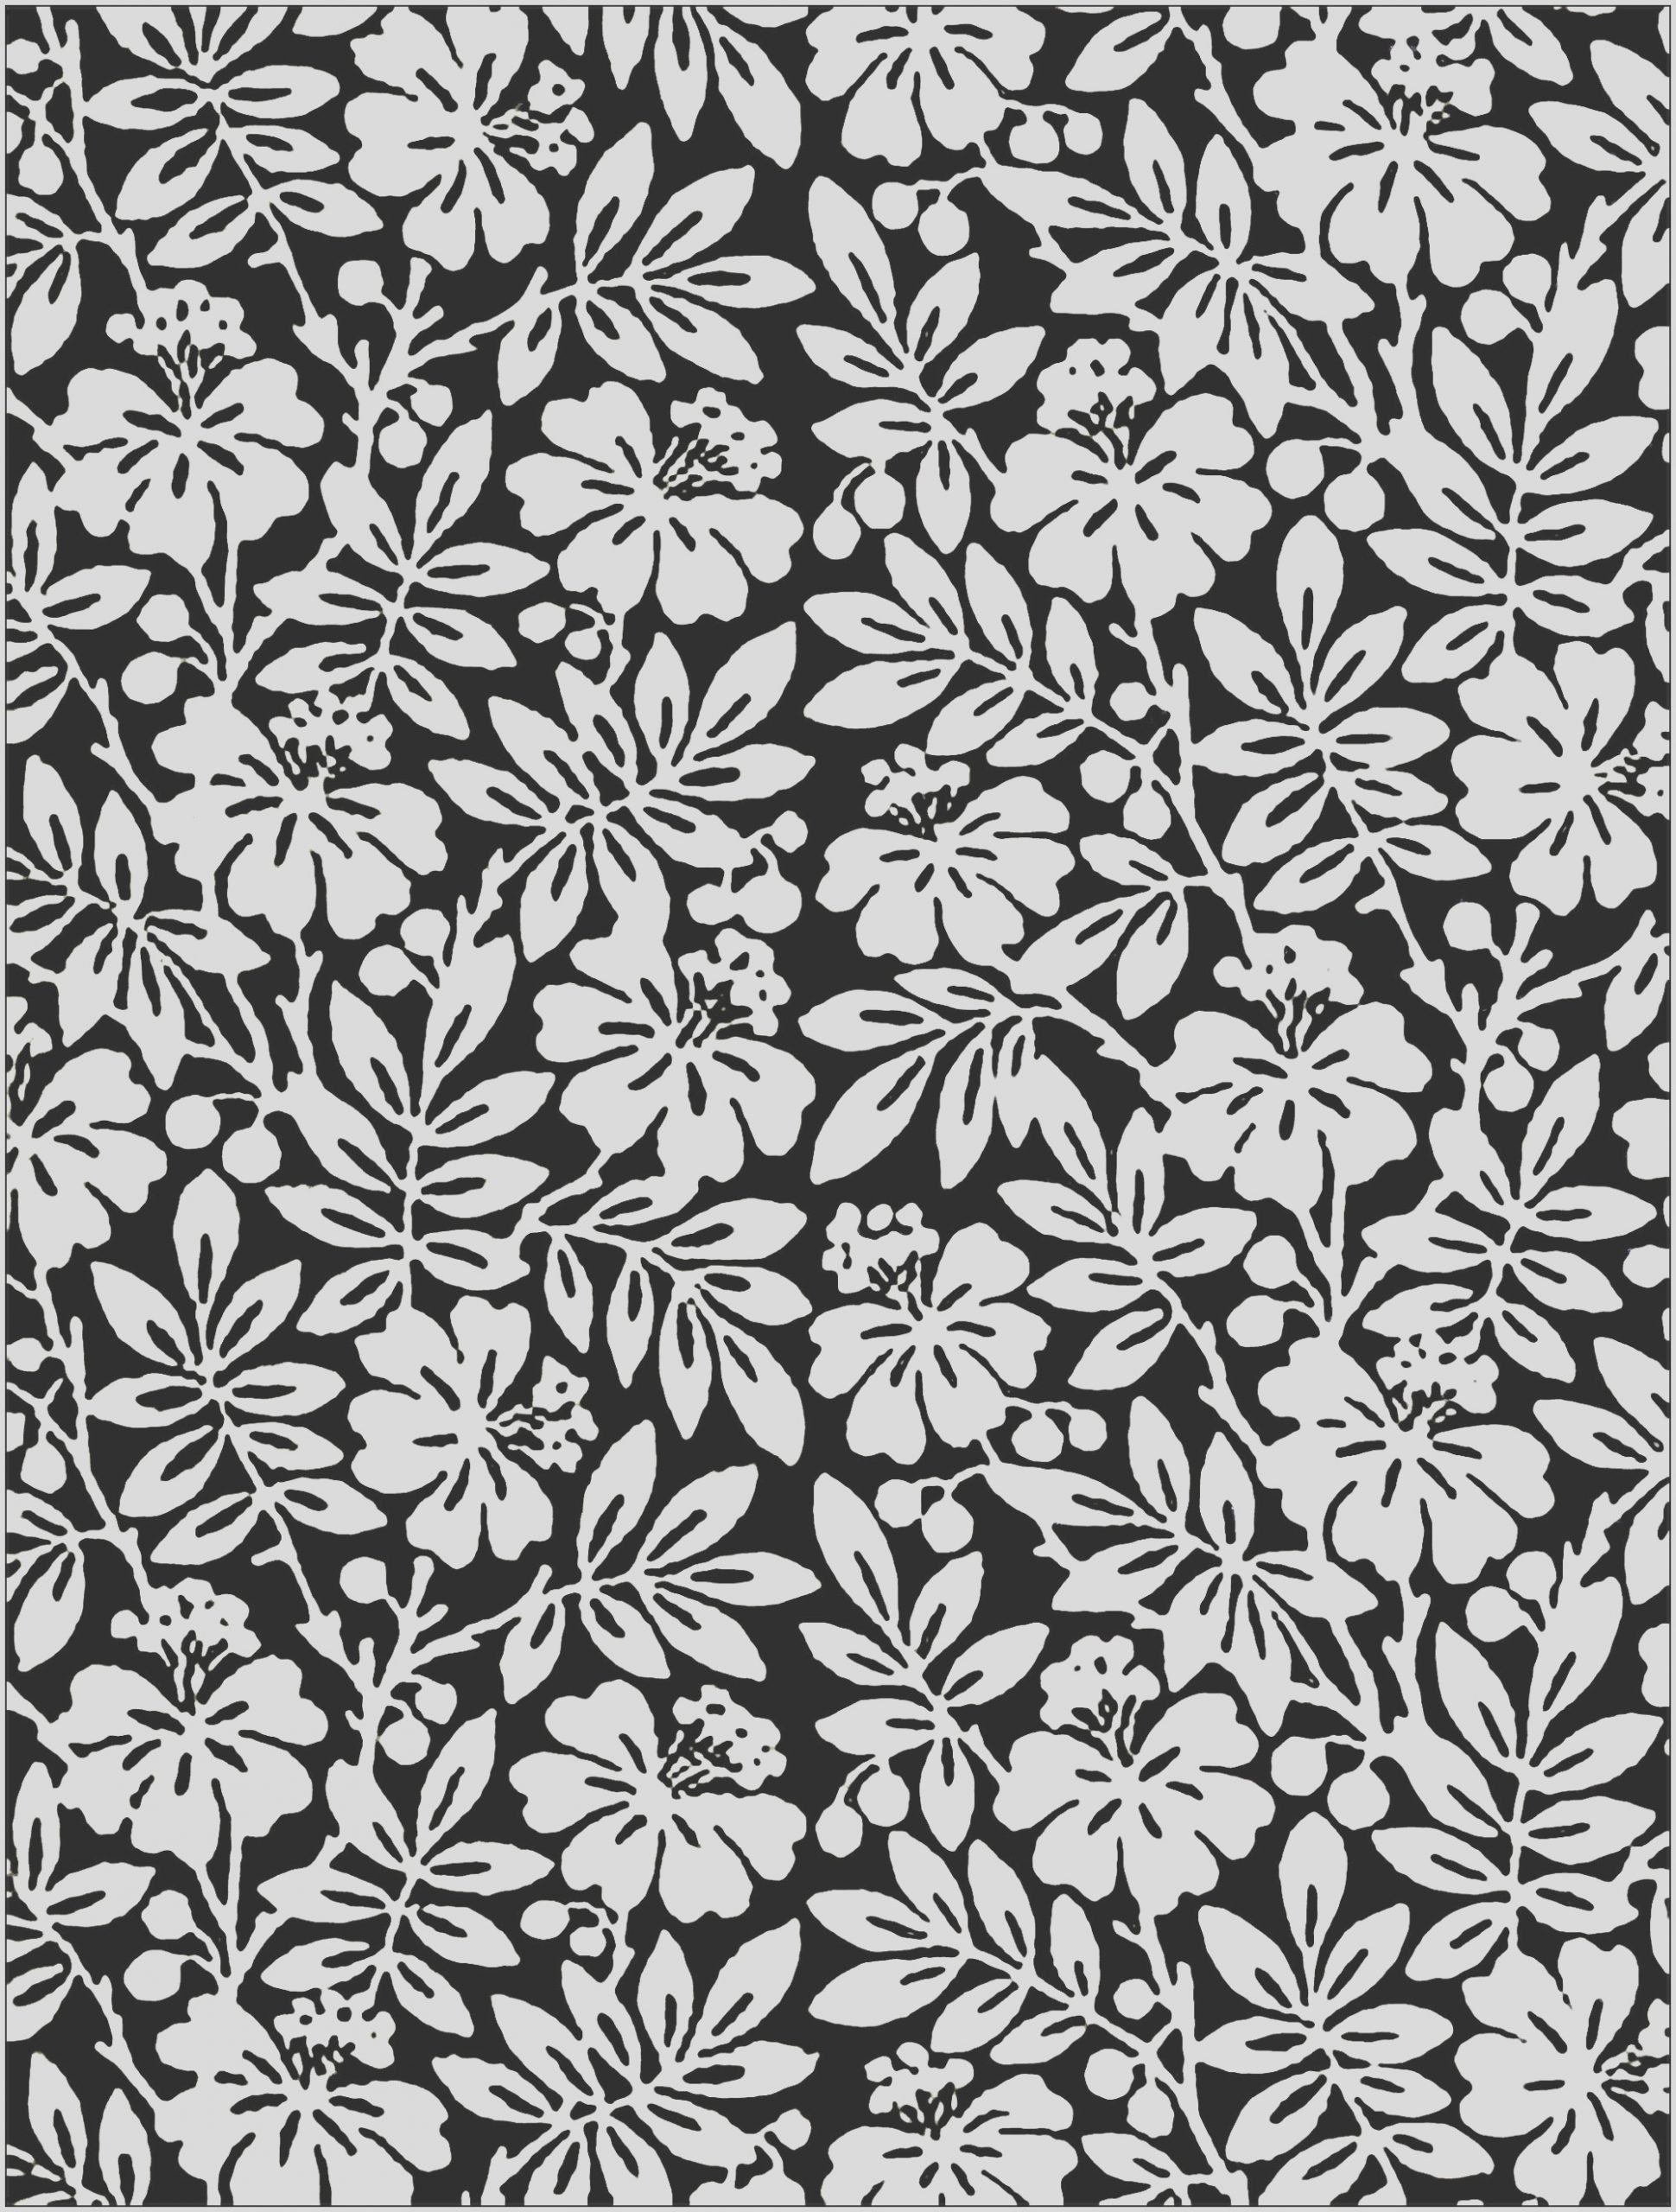 image=fleurs et ve ation coloring Black and white Flowers from English 19th Century Wallpaper 1